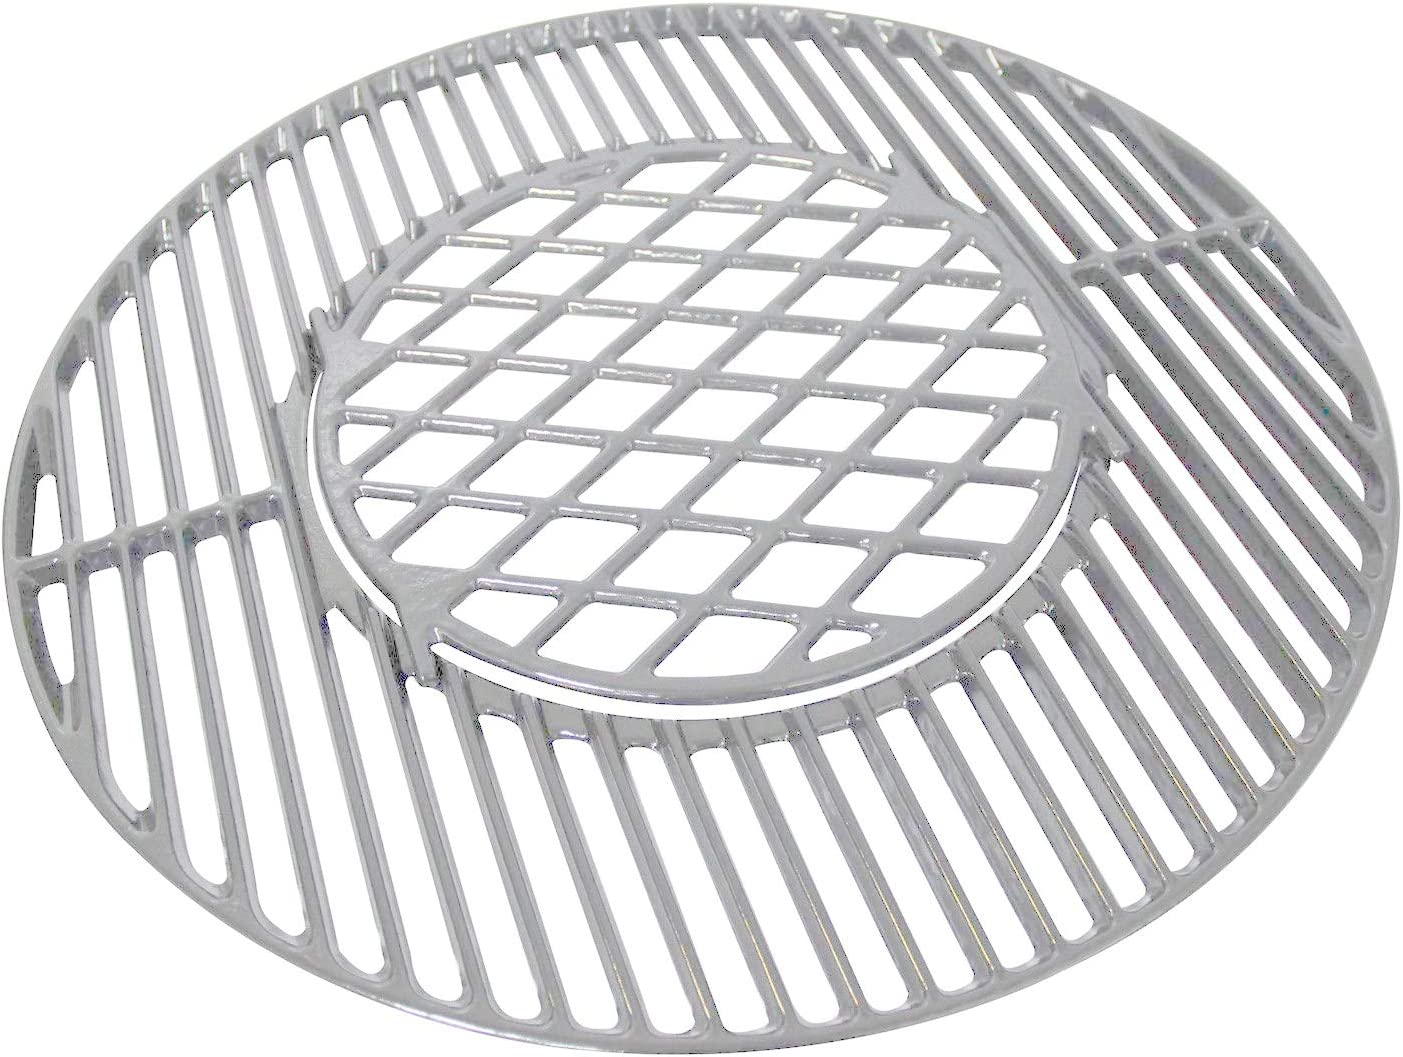 Votenli S883E (1-Pack) Stainless Steel Cooking Grid Grates Replacement for Weber 22.5